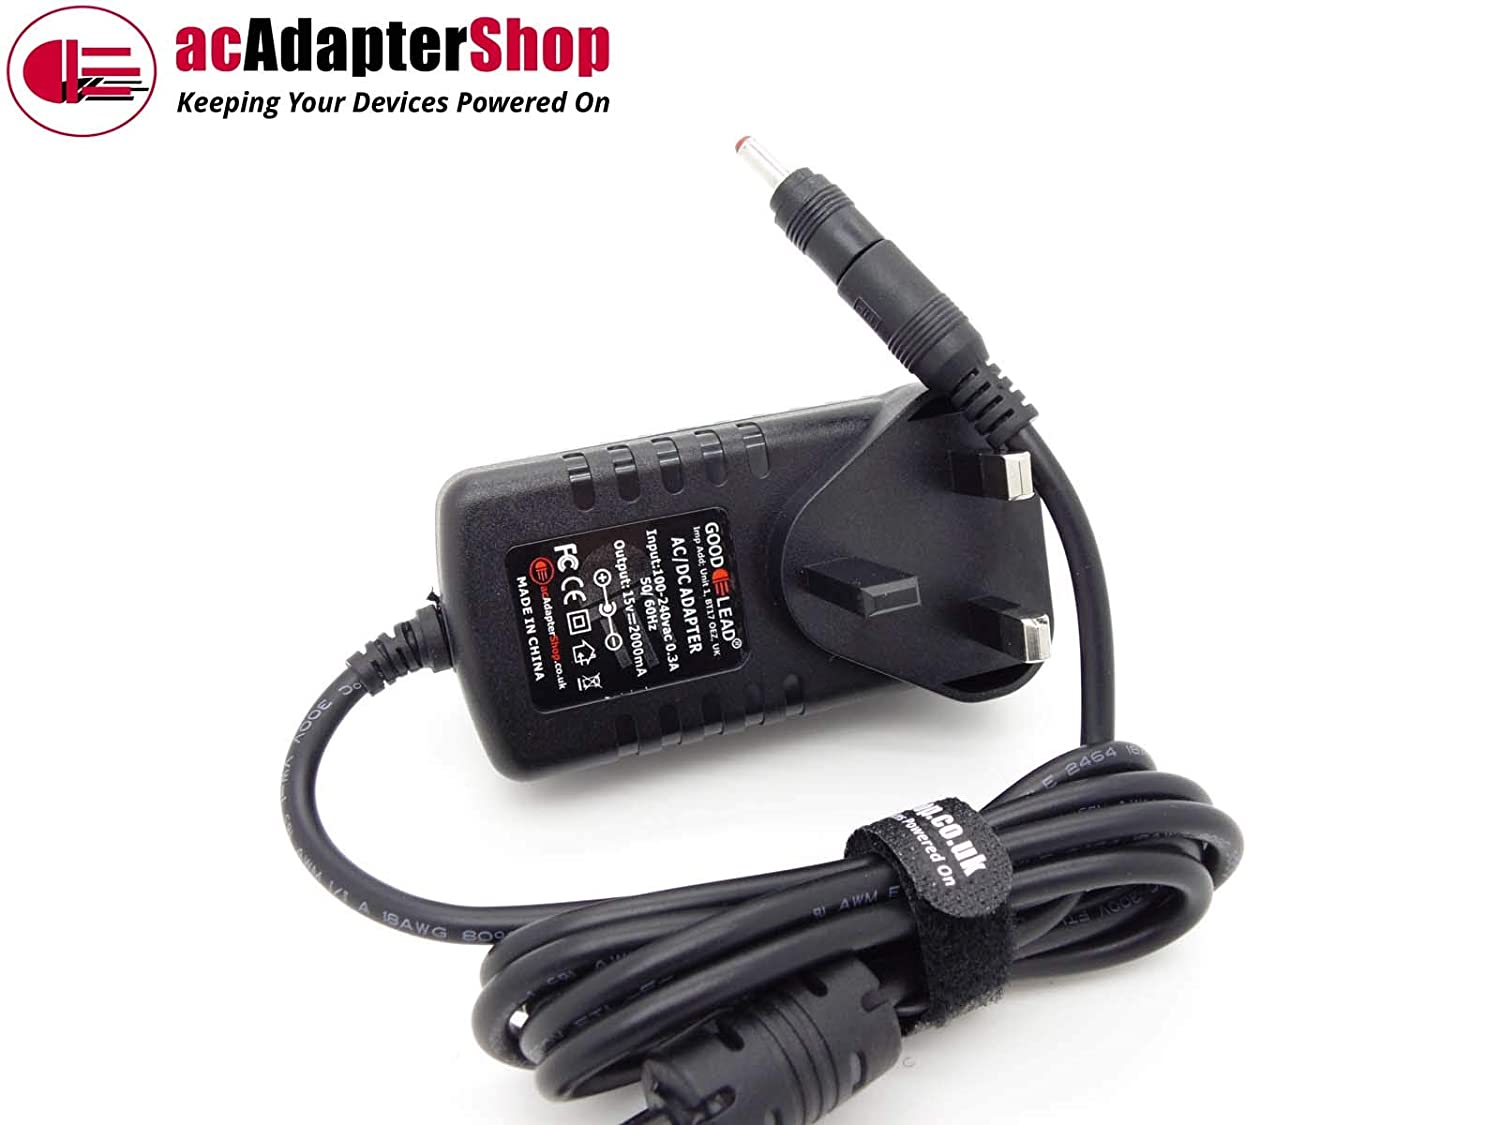 GOOD LEAD 15V 1000mA Replacement AC Adaptor model HR1501000 to Charge Jump Start Pack